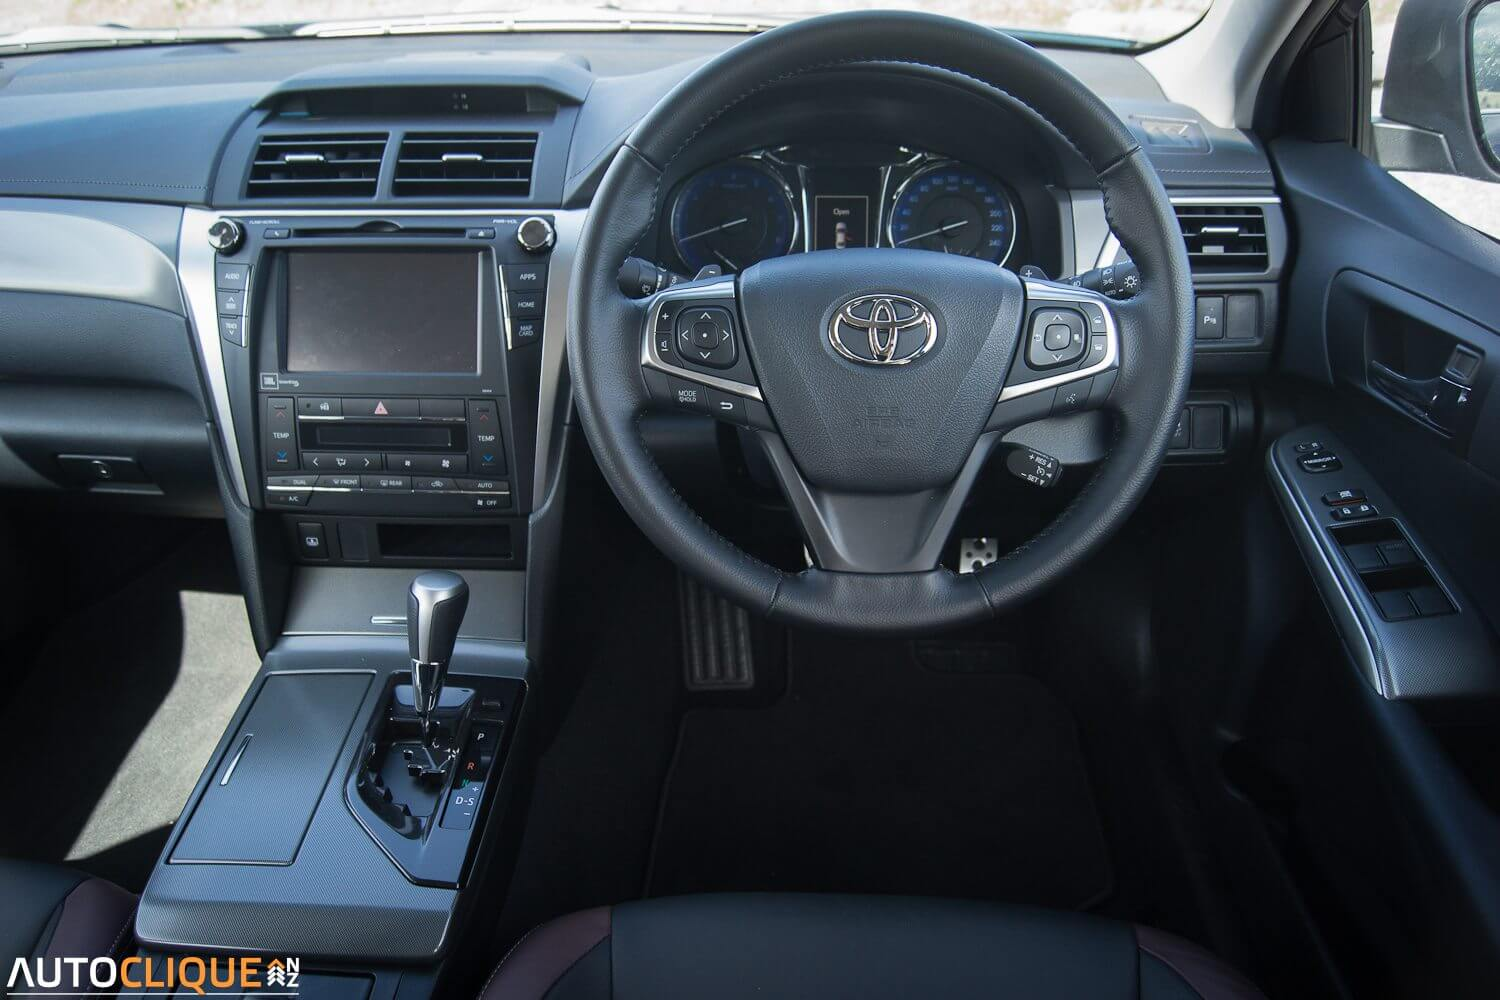 Toyota Aurion (14 of 20)